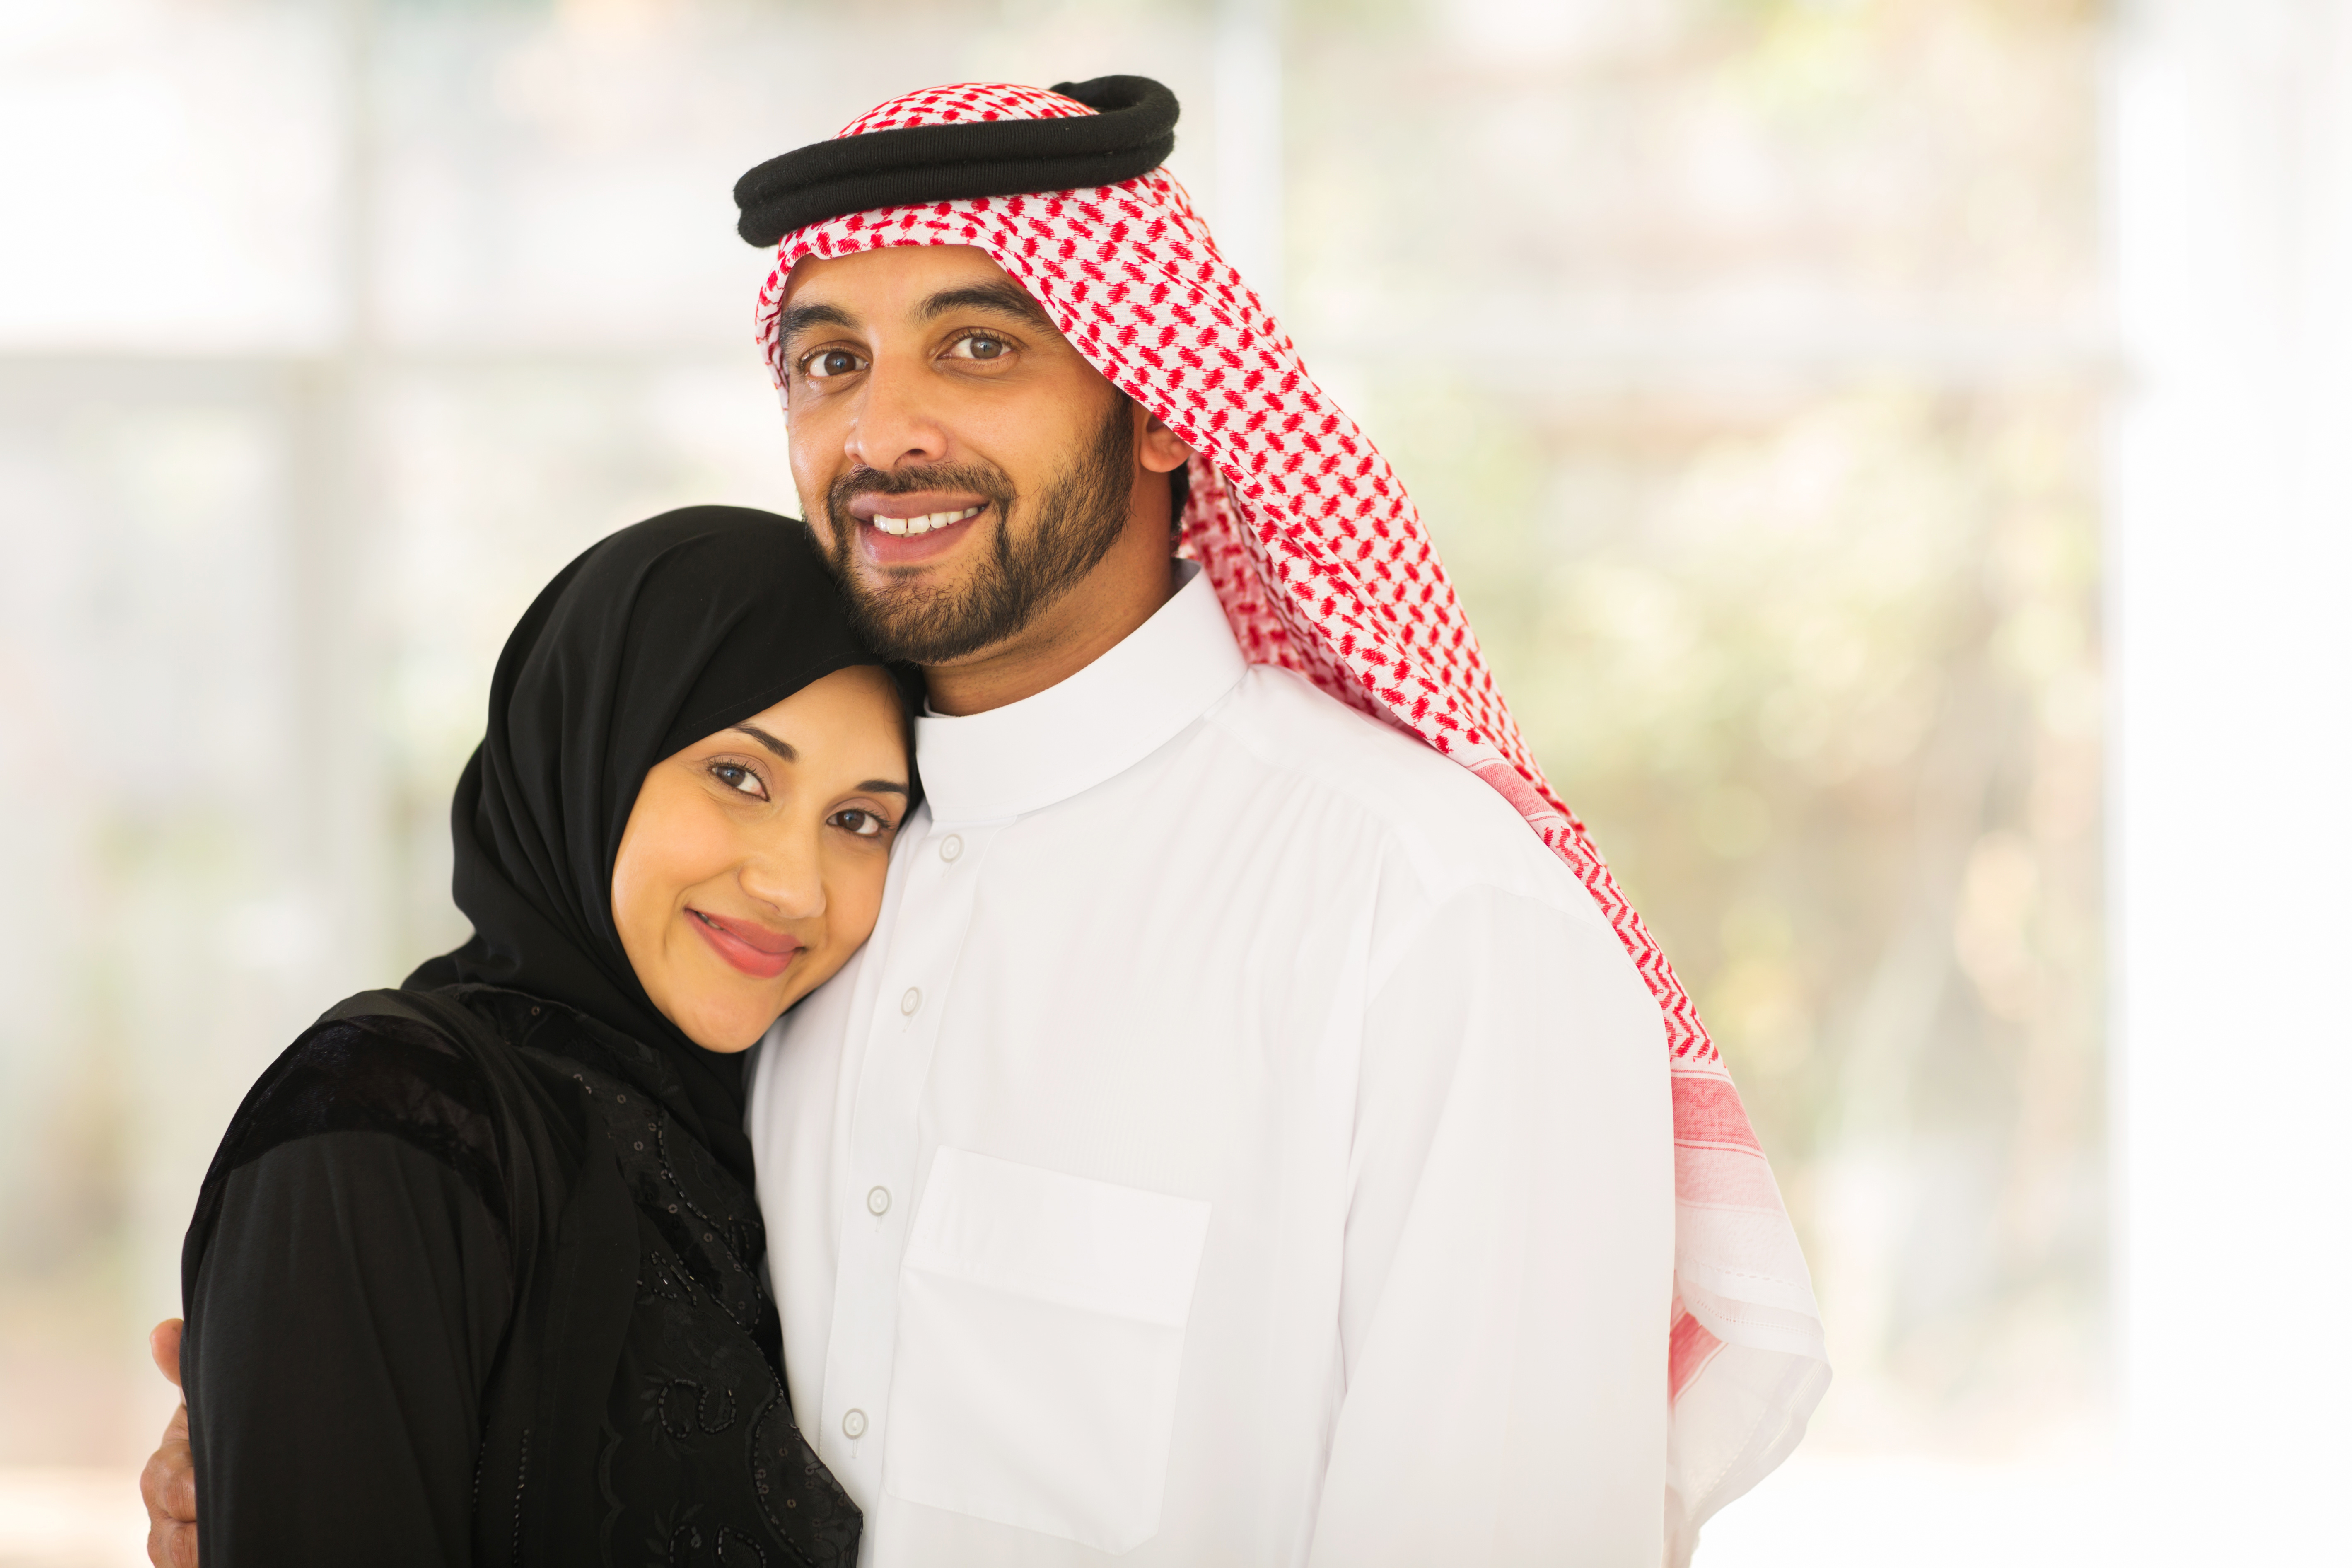 Rules for dating a muslim man